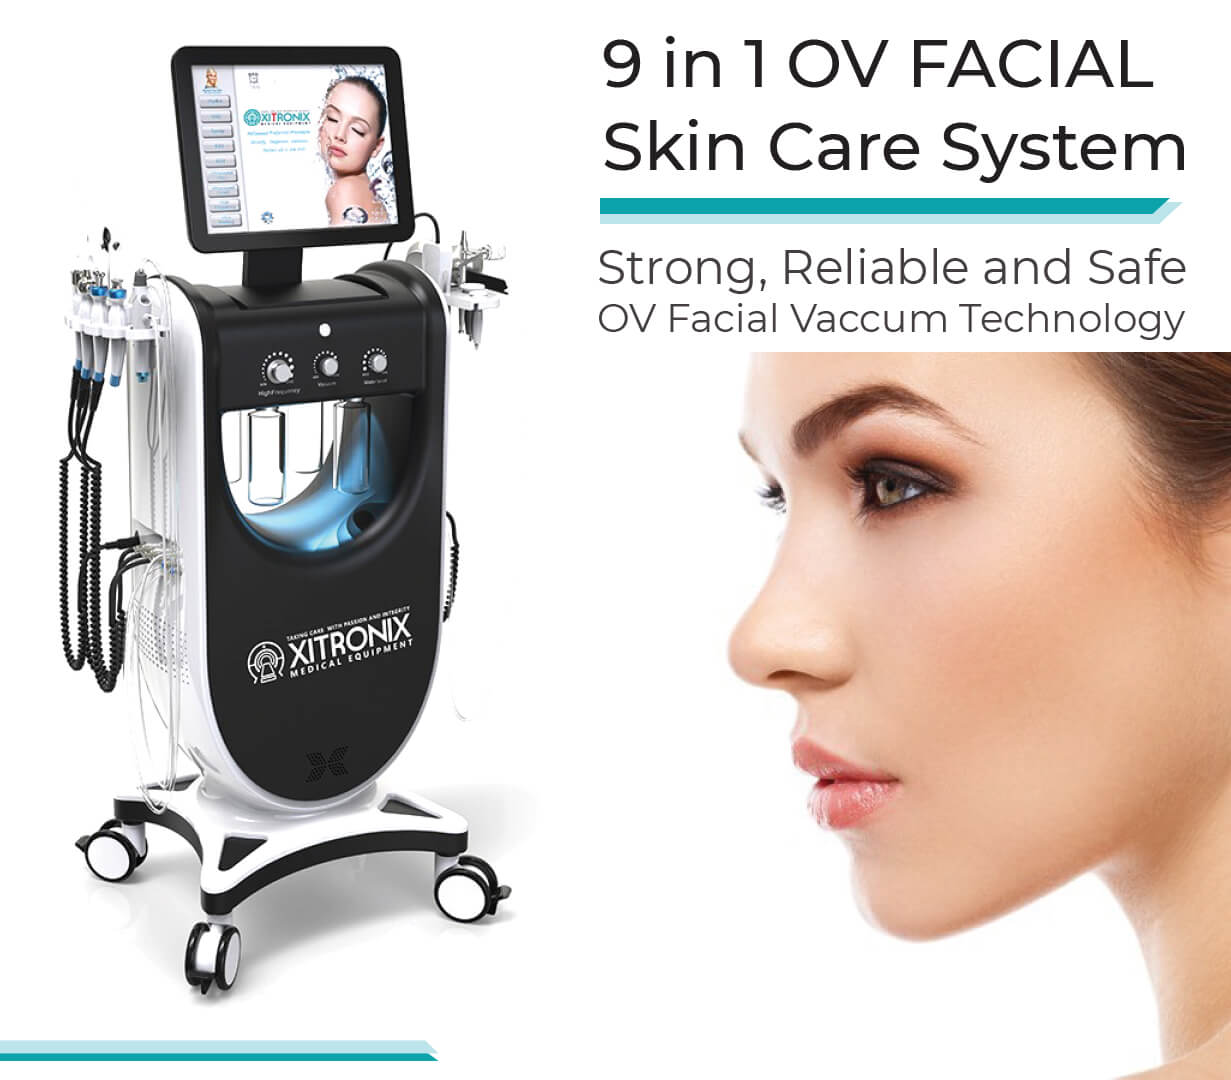 Oxitronix Facial Machine